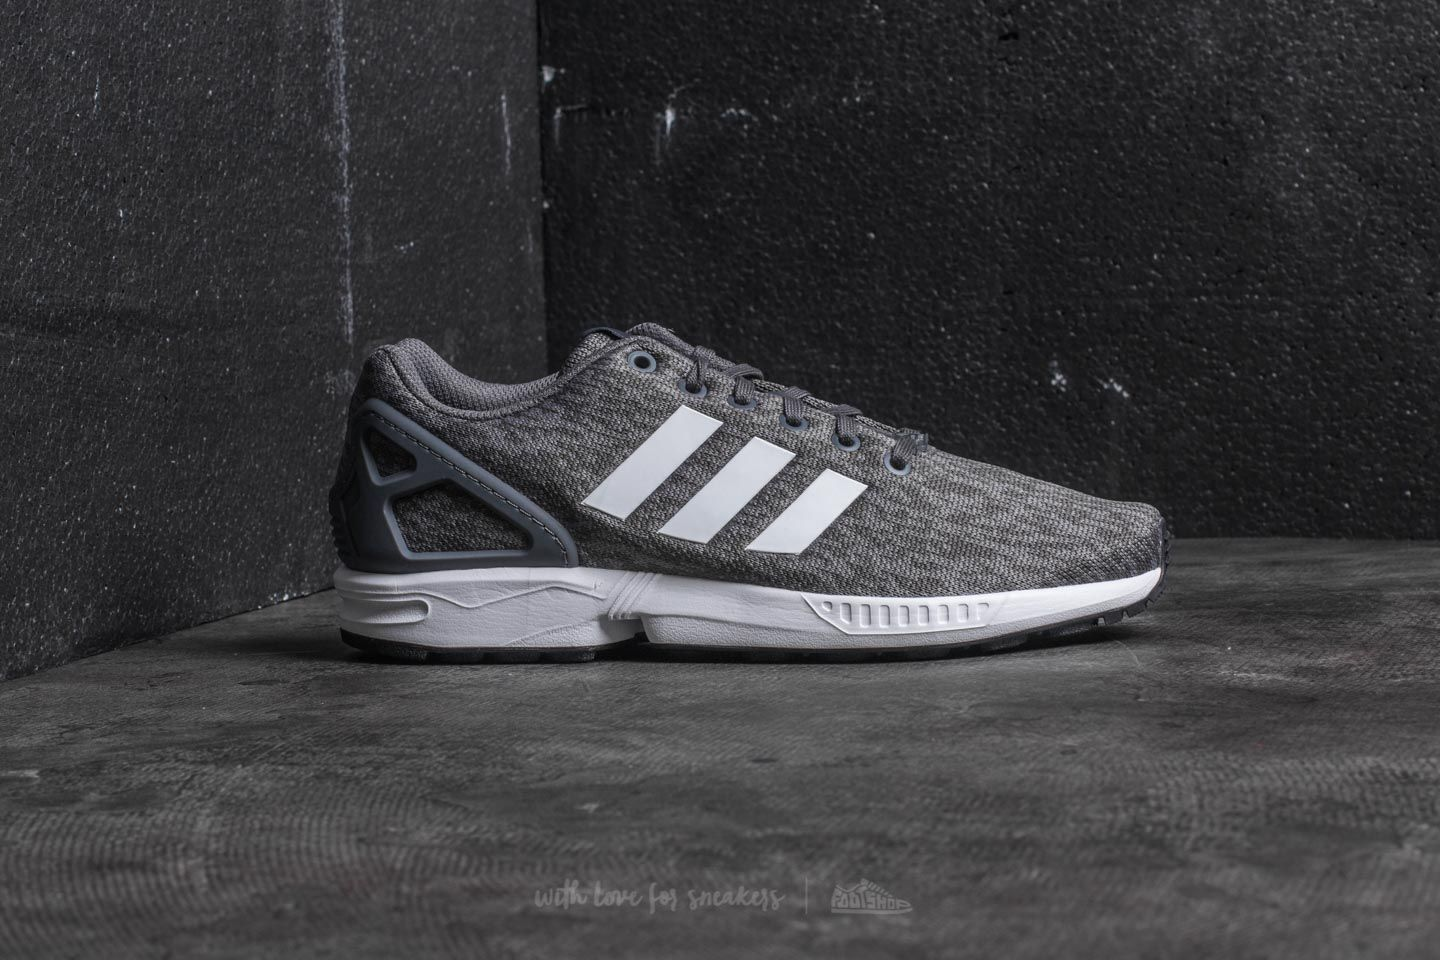 e491ee561ee7e ... australia adidas zx flux grey five ftw white core black at a great  price 59a06 9256b